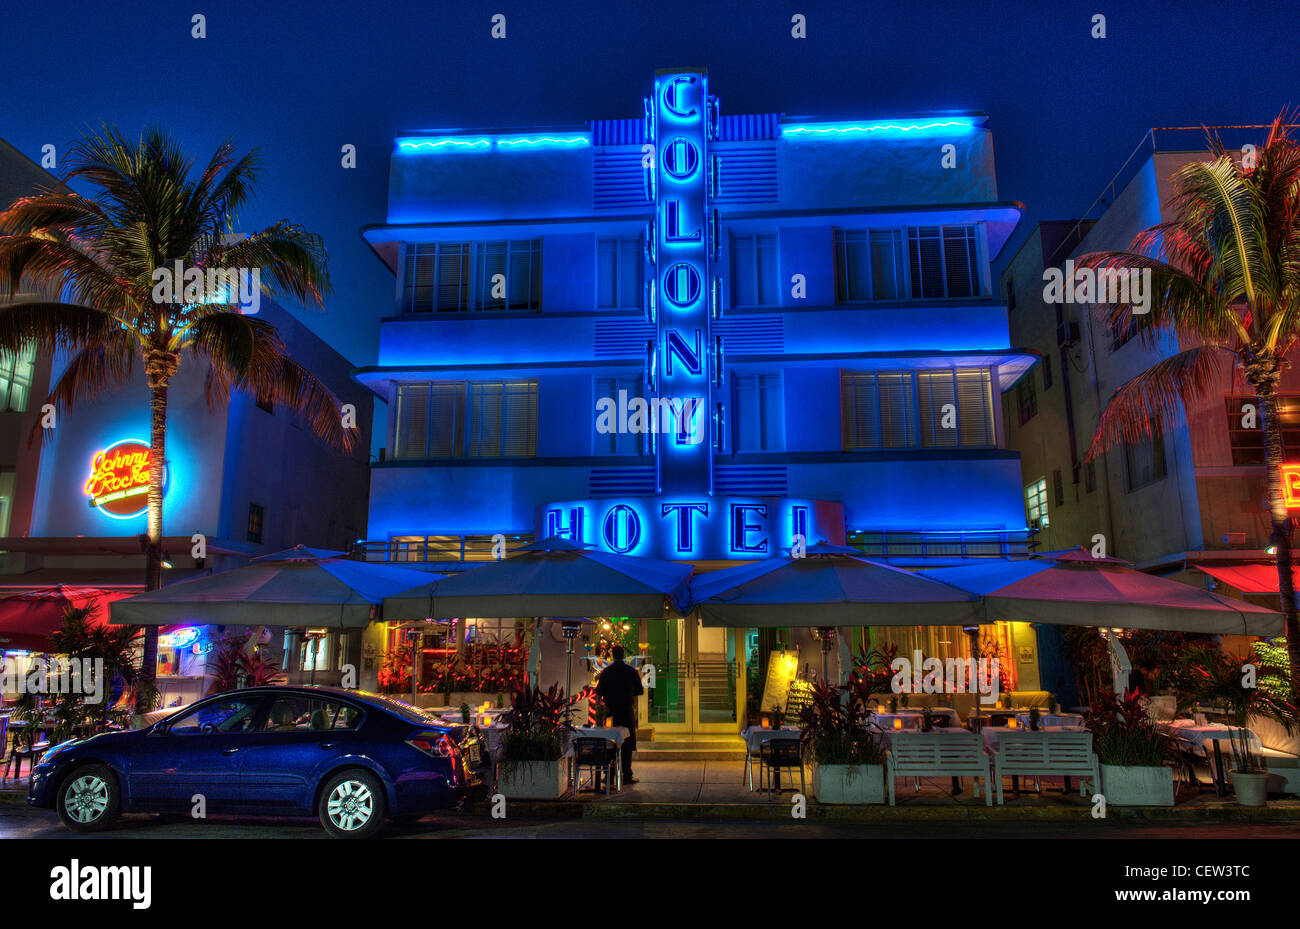 Colony Hotel South Beach Miami Florida - Stock Image